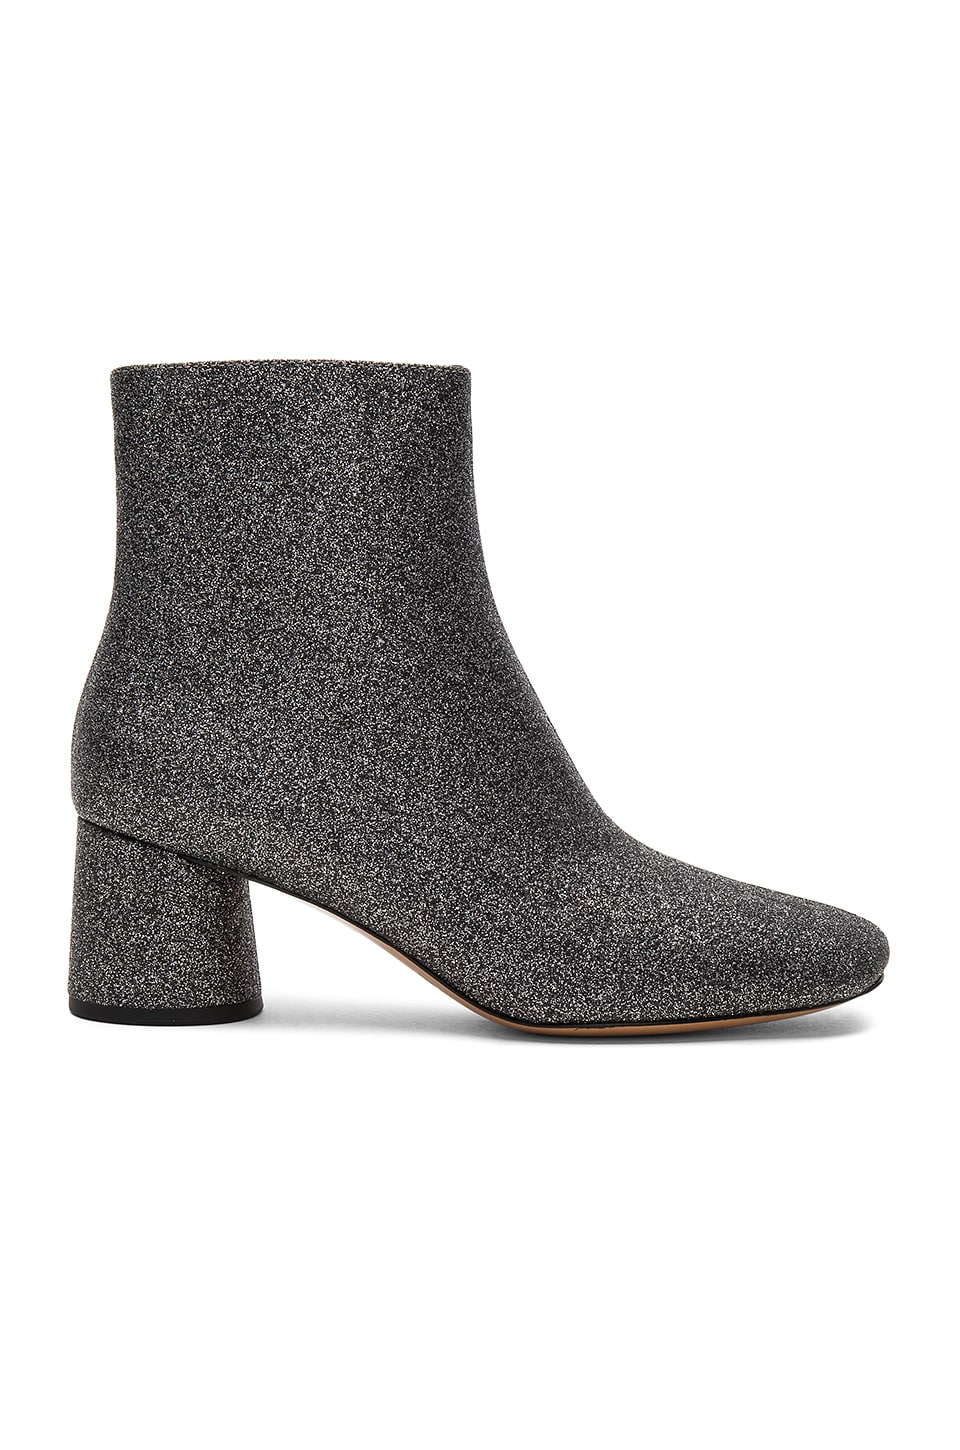 Marc Jacobs Valentine Ankle Boot in Dark Silver